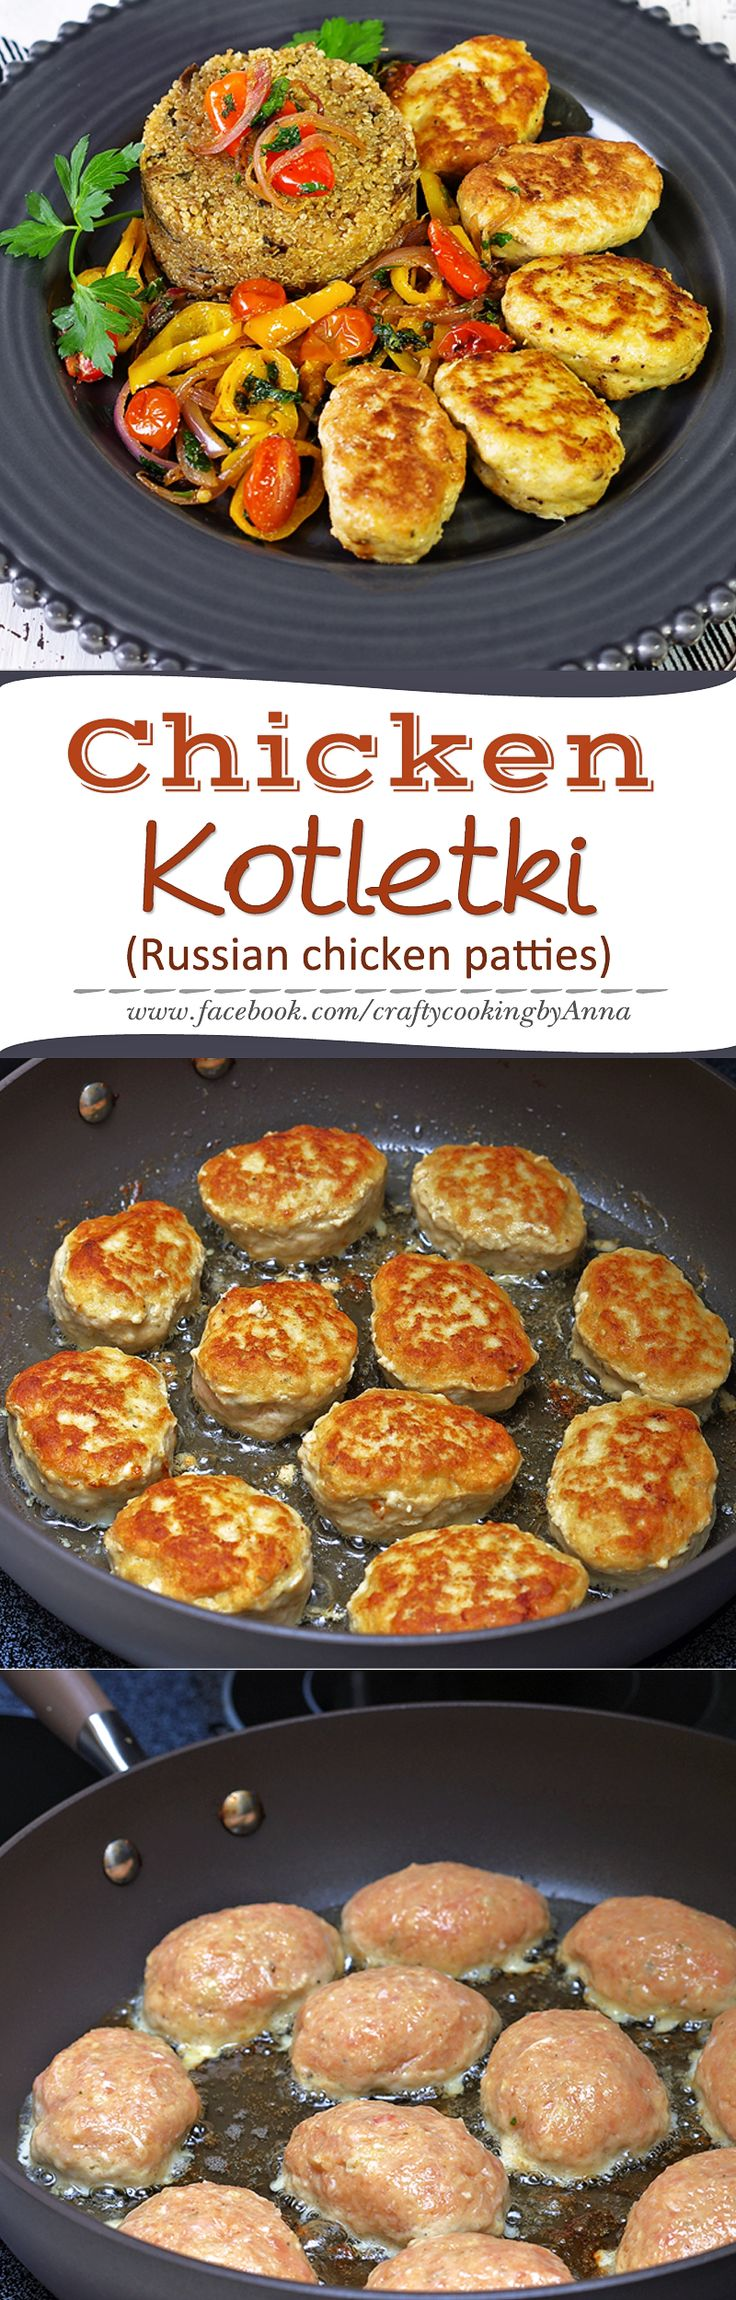 Chicken Kotletki (Russian Style Chicken Patties) #Delicious #Kid-Friendly